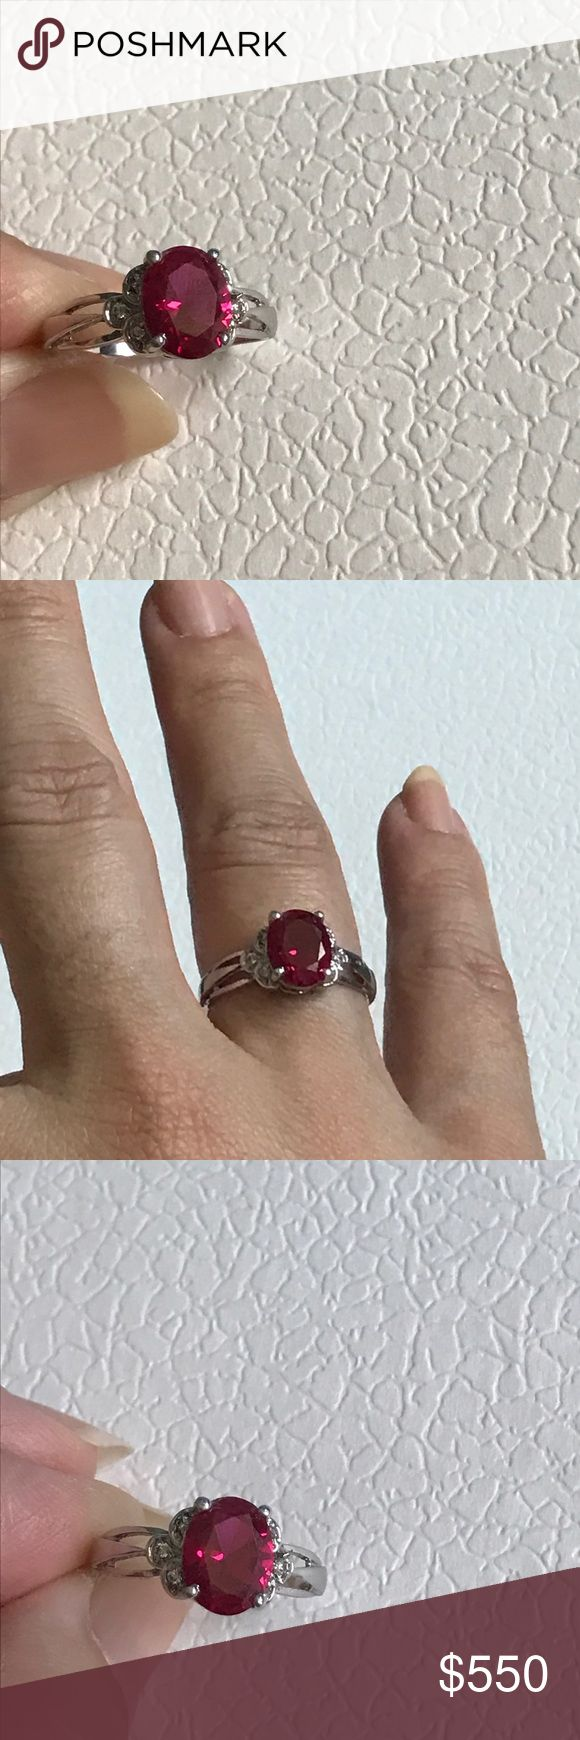 14K white gold natural ruby ring 14K white gold ruby ring with small side white sapphires. Genuine ruby- I don't think it is a lab created stone. Great condition. Approx size 7. Includes jewelry box. Jewelry Rings